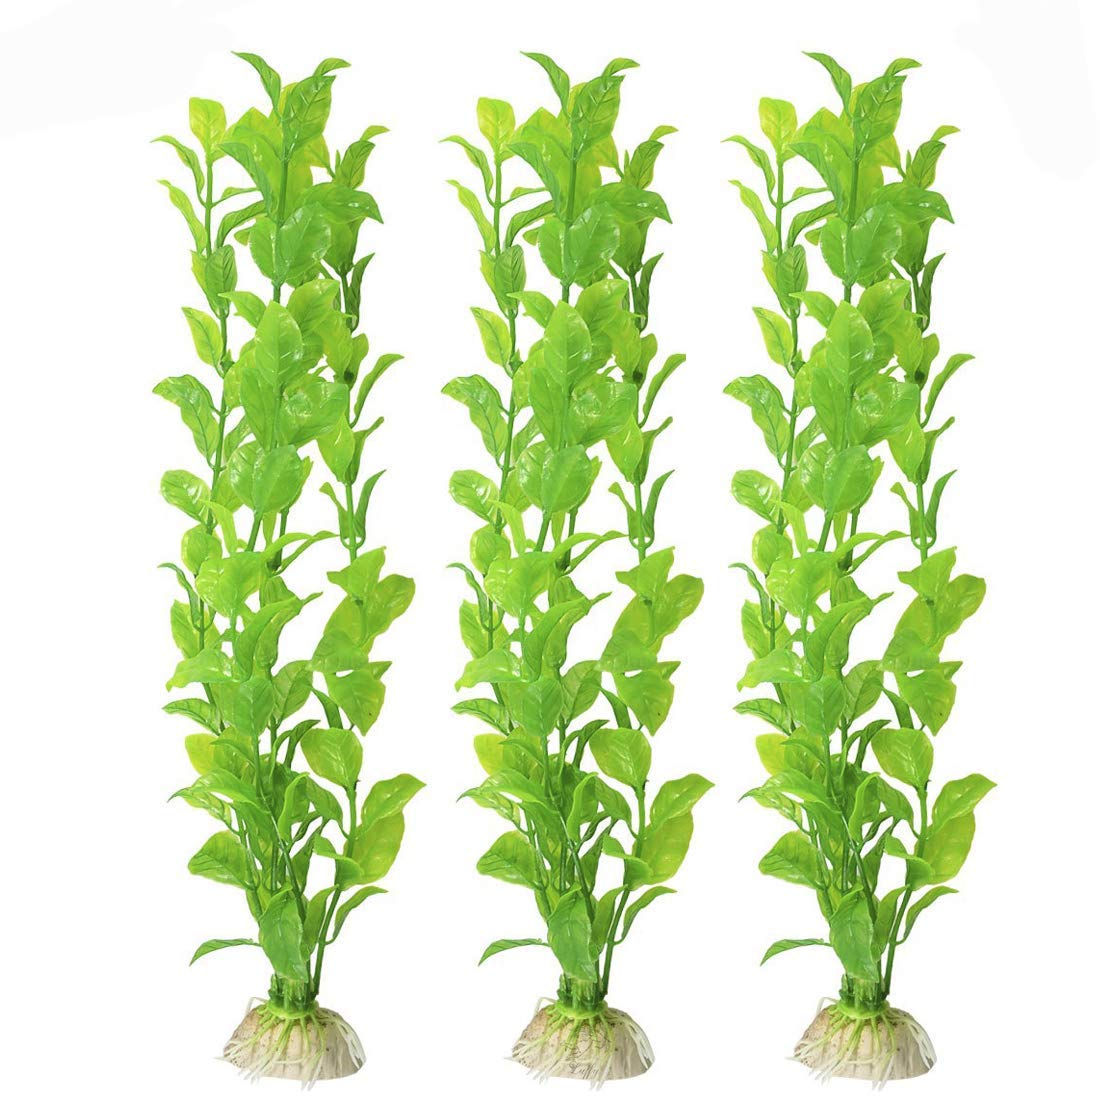 MEISO Beautiful Plastic Aquarium Plant Set: Life-Like & Attractive for Your Tank: Non Toxic & Safe for All Fish & Pets : Easy to Clean : Zero Maintenance : No CO2 Needed